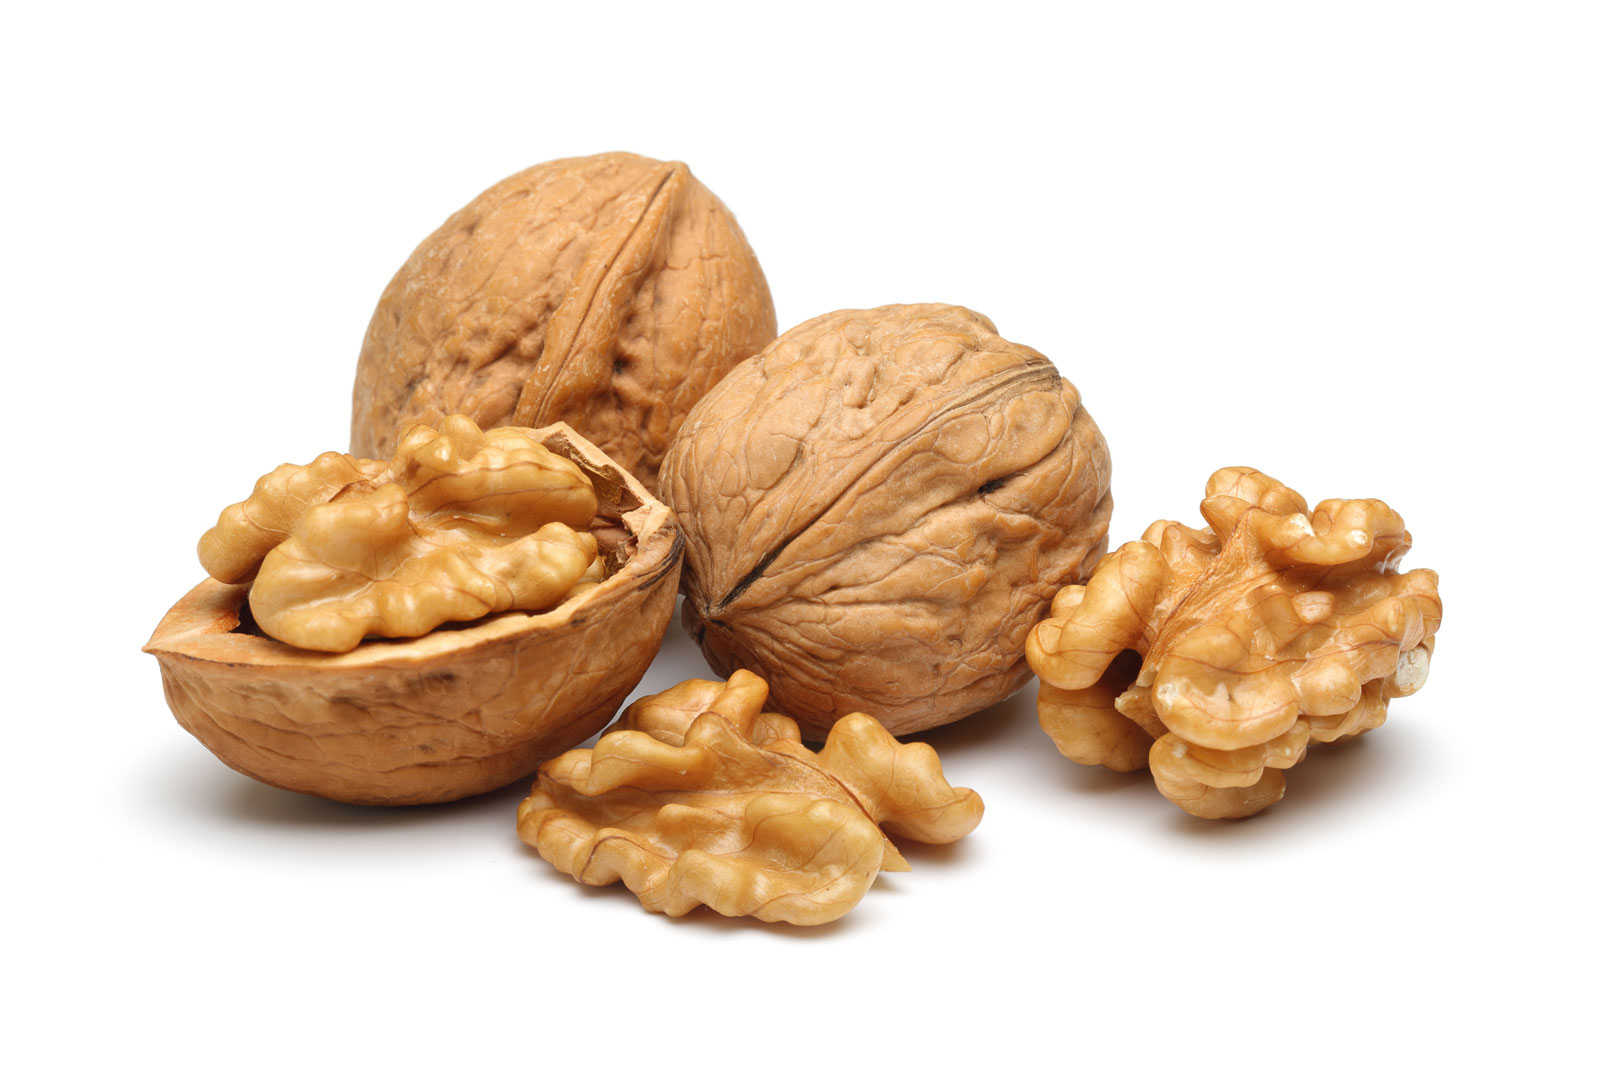 lifestyle-super-food-items-to-make-your-mood-health-better-walnut